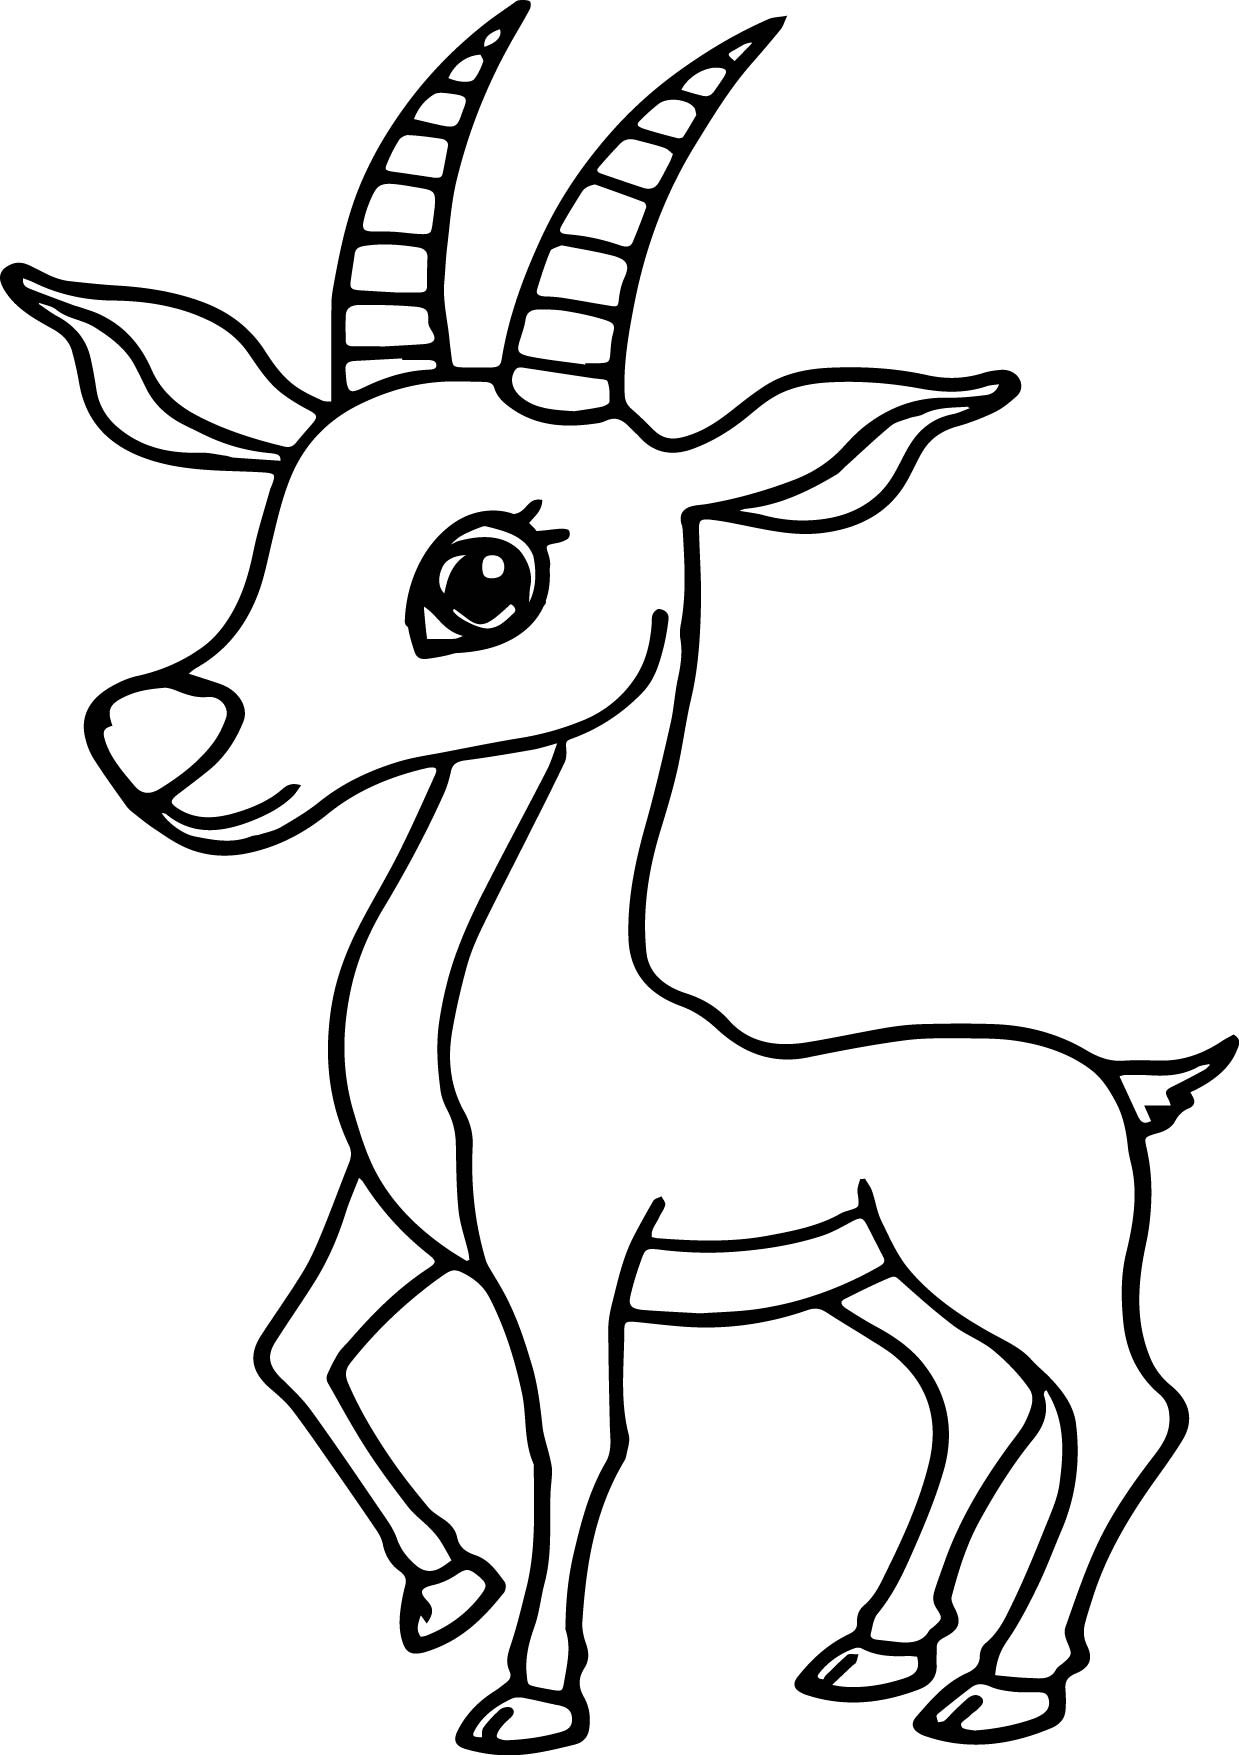 Antelope Coloring Page At Getcolorings